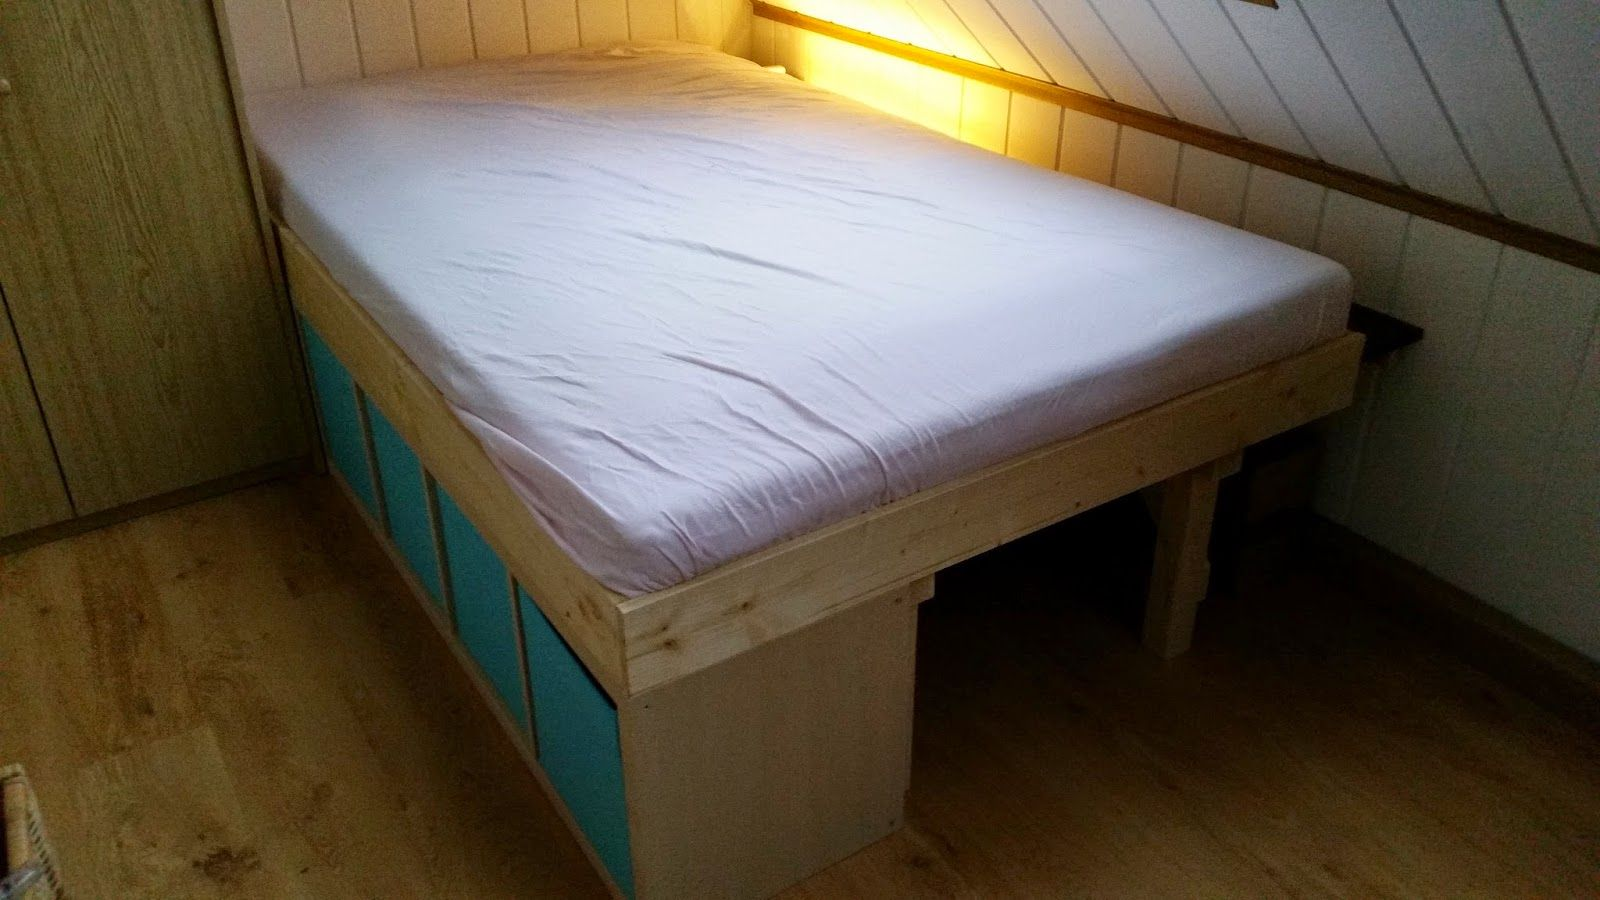 1 20m kallax bett ikea ikeahack kallax expedit bed james room pinterest ikea hack. Black Bedroom Furniture Sets. Home Design Ideas